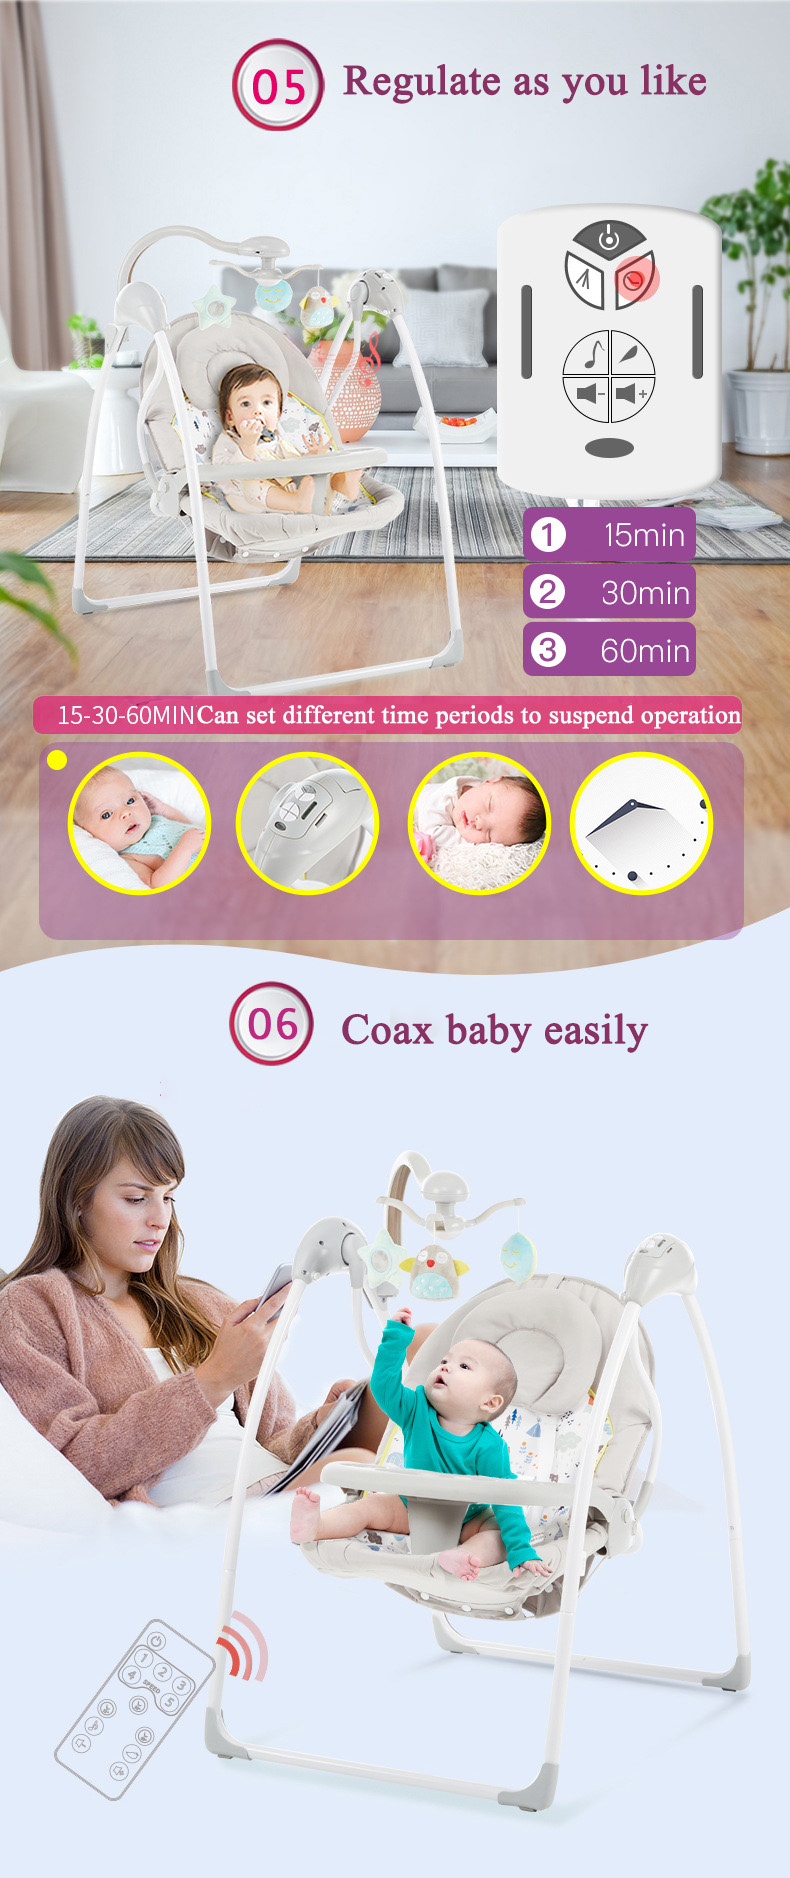 H4d37f0cbf7de42db9dc01a571e8fddd44 Babyinner Baby Rocking Chair Baby Bassinet Newborn Electric Cradle Foldable Baby Chair Multifunctional Swing Baby Sleeping Bed